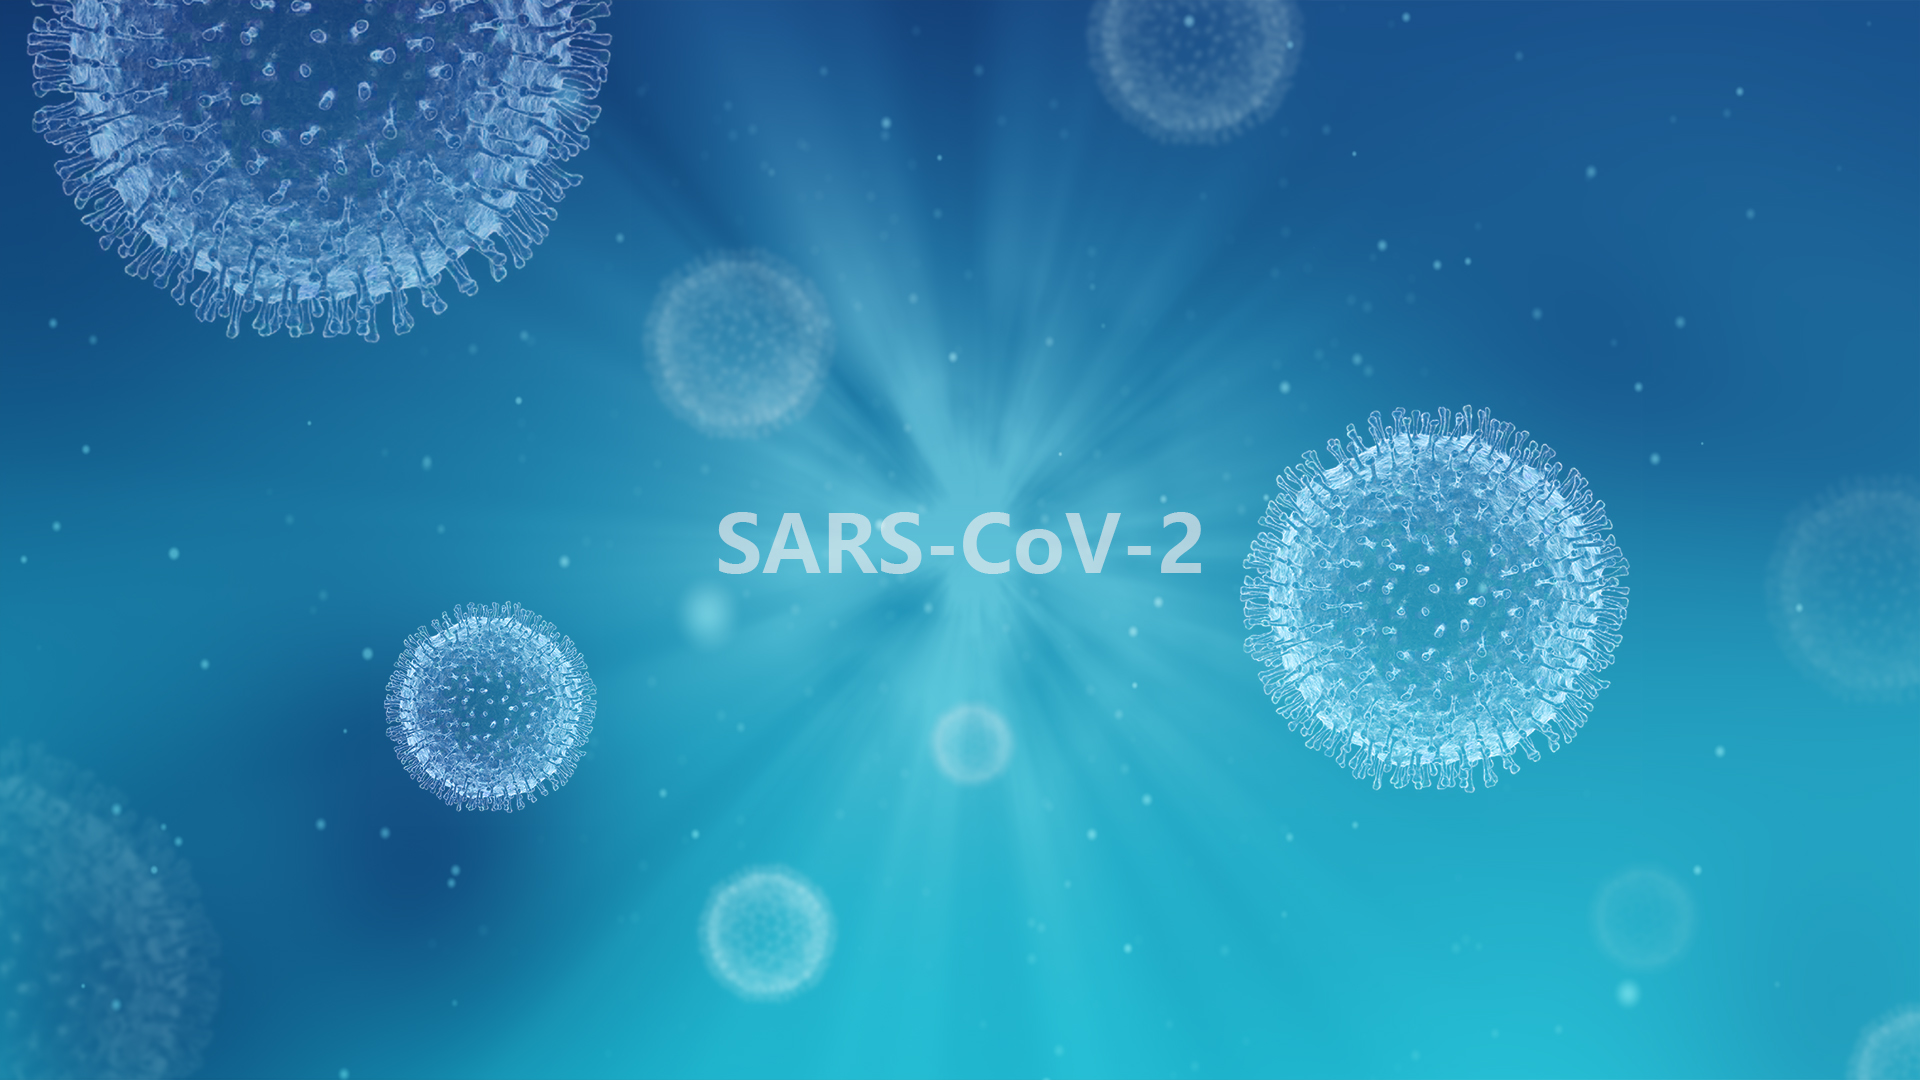 Human neutralizing antibodies against SARS-CoV-2 found by Chinese researchers